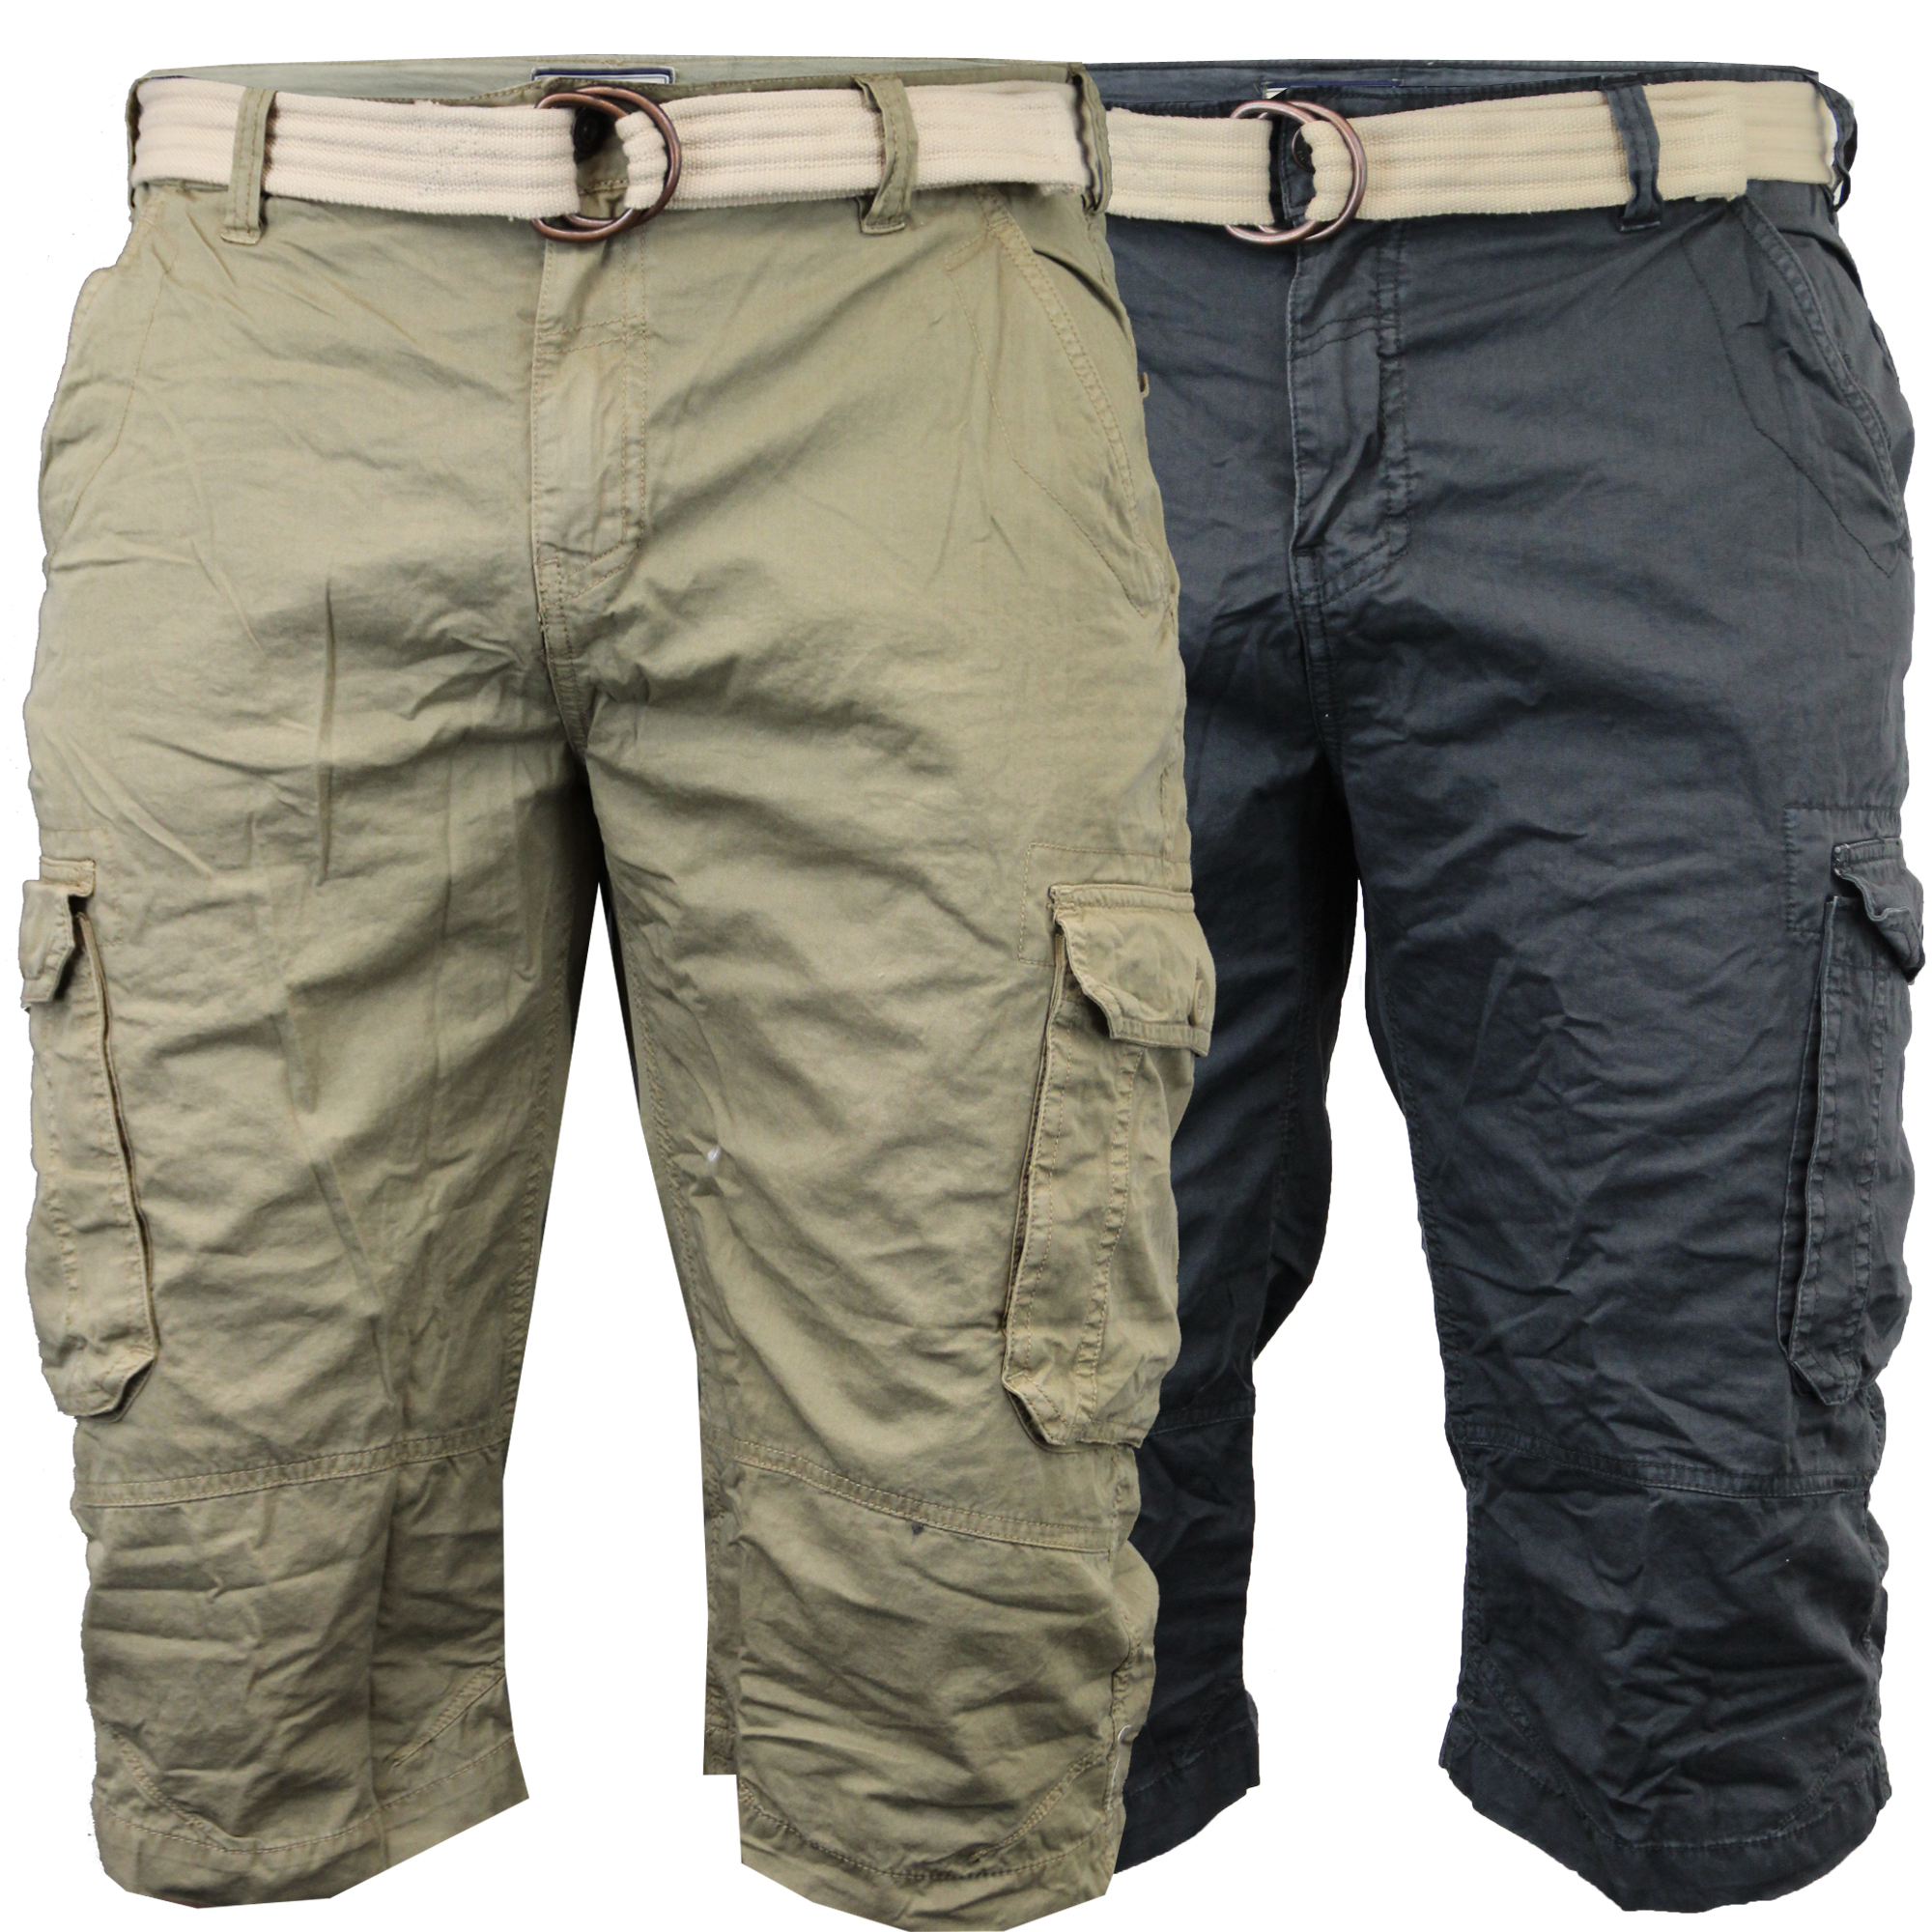 Men's cargo pants are perfect for laid-back occasions. For backyard barbeques, choose lightweight cotton or cotton-blend picks to pair with polo shirts or graphic tees. Experiment with unexpected colors like orange, blue and red.